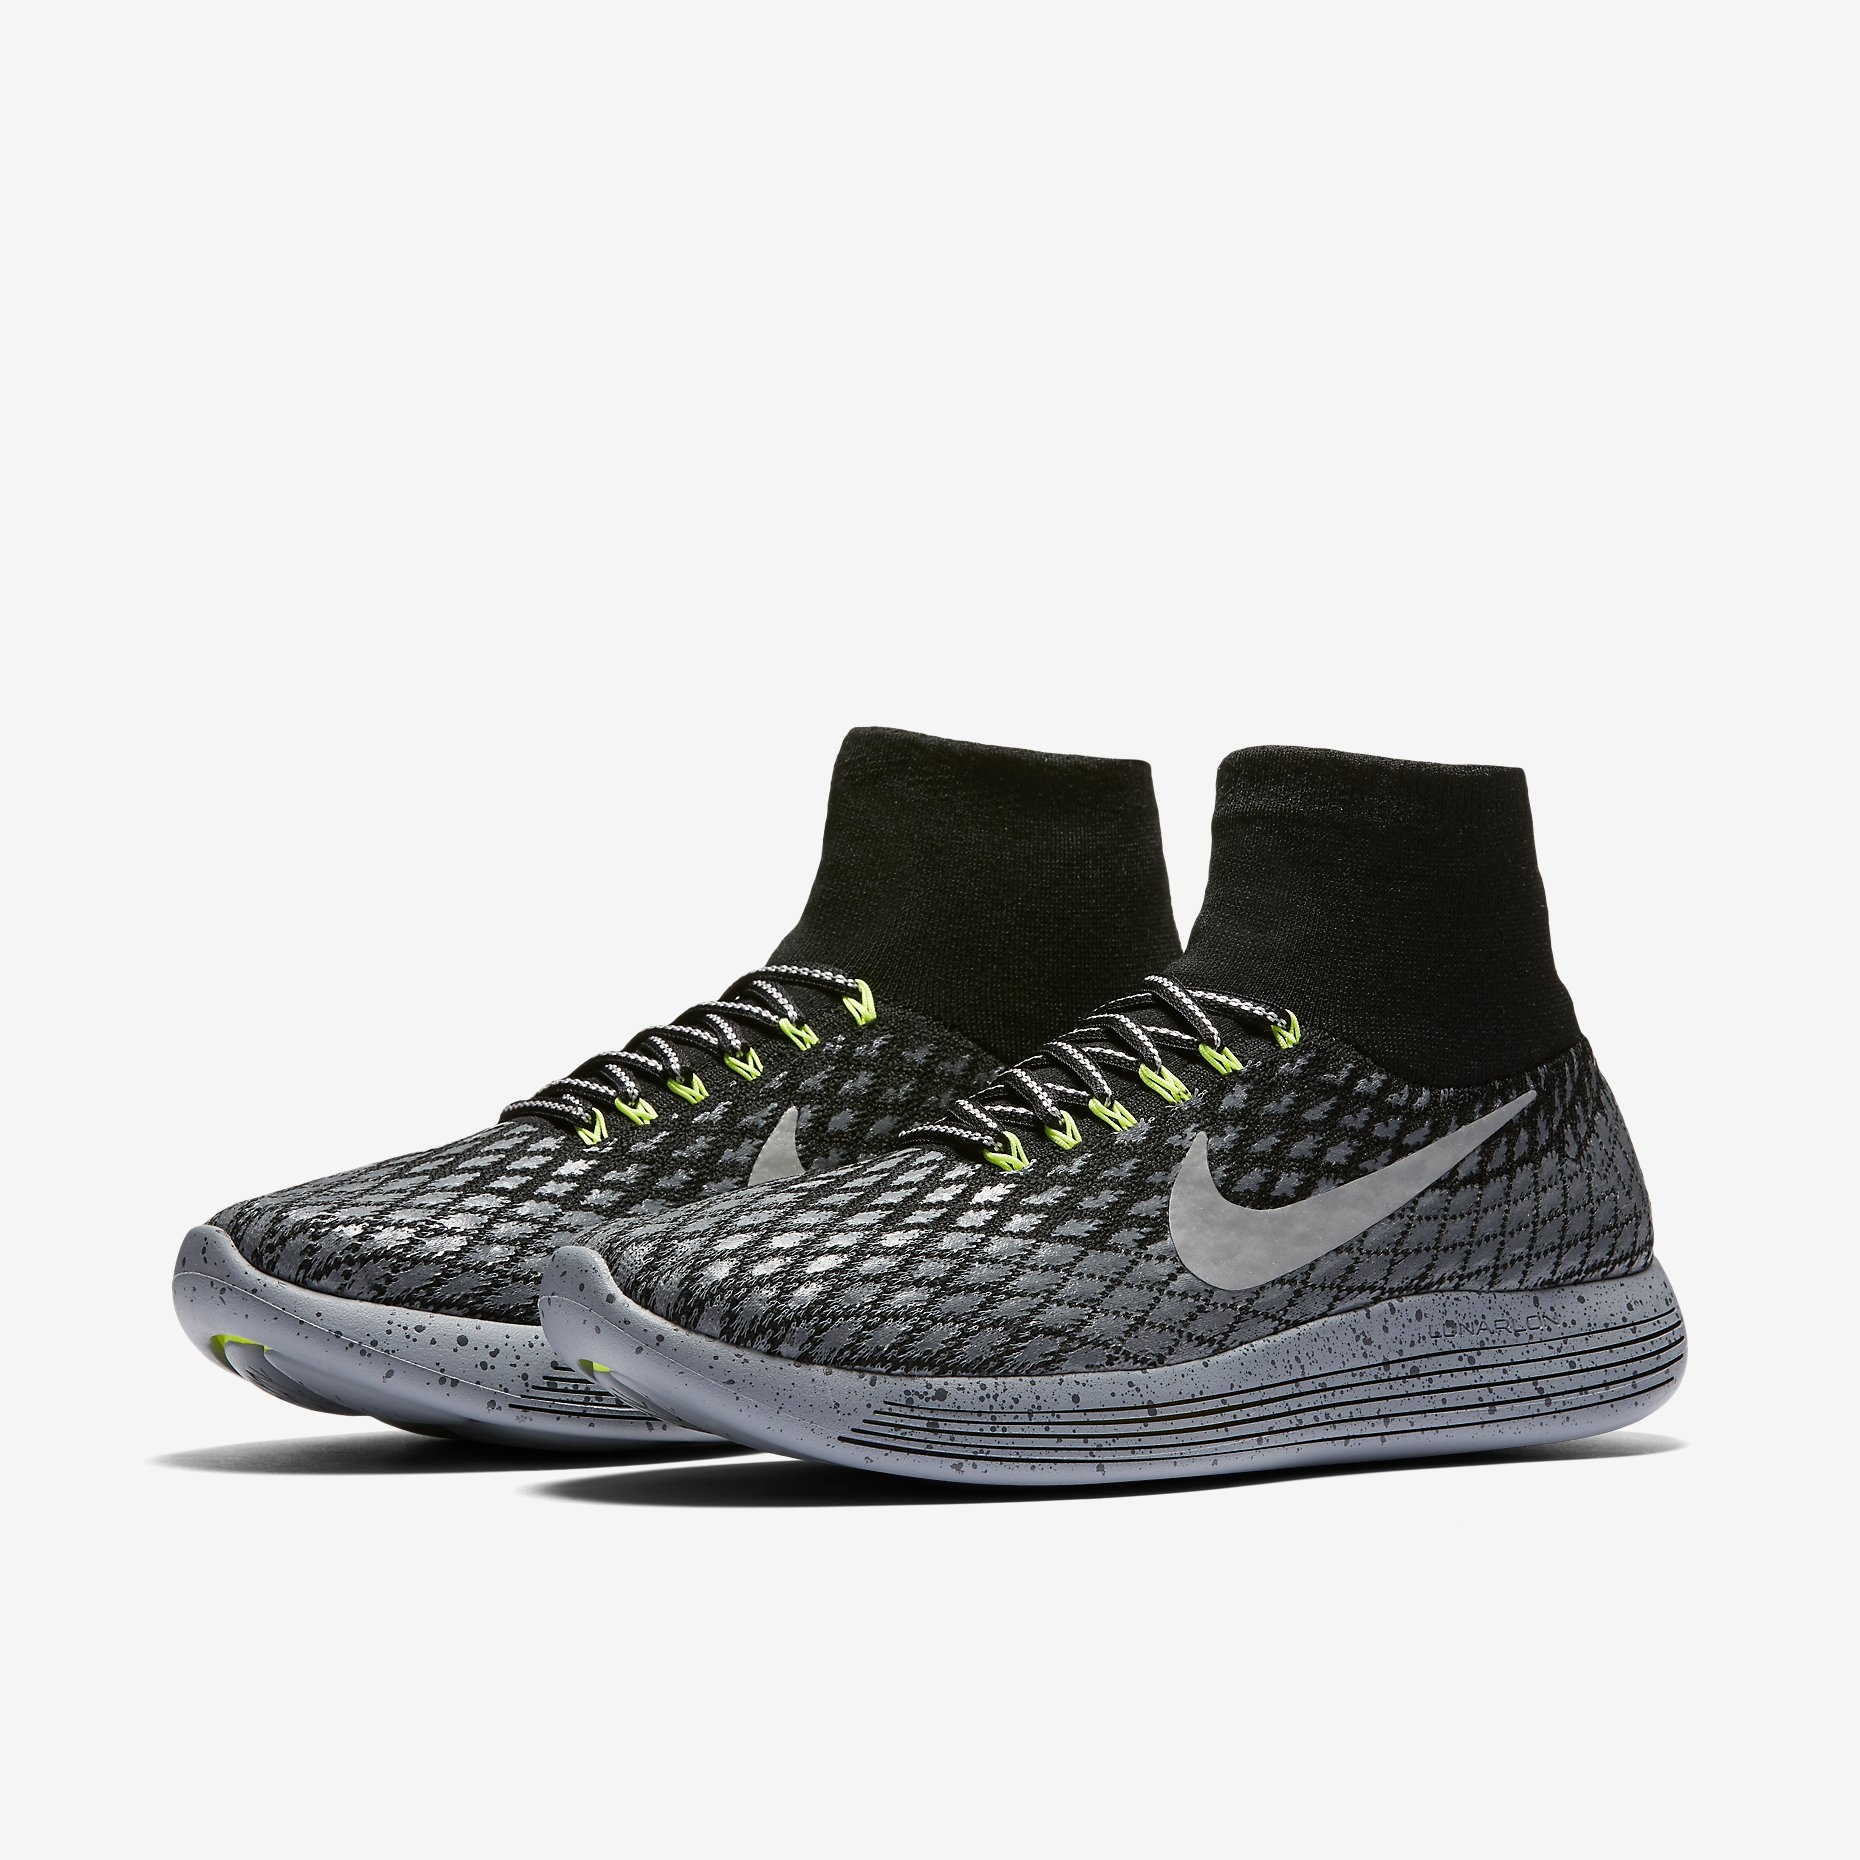 bffc83e0e8a7 Nike Lunarepic Flyknit Shield Men s Running Shoes - Alton Sports